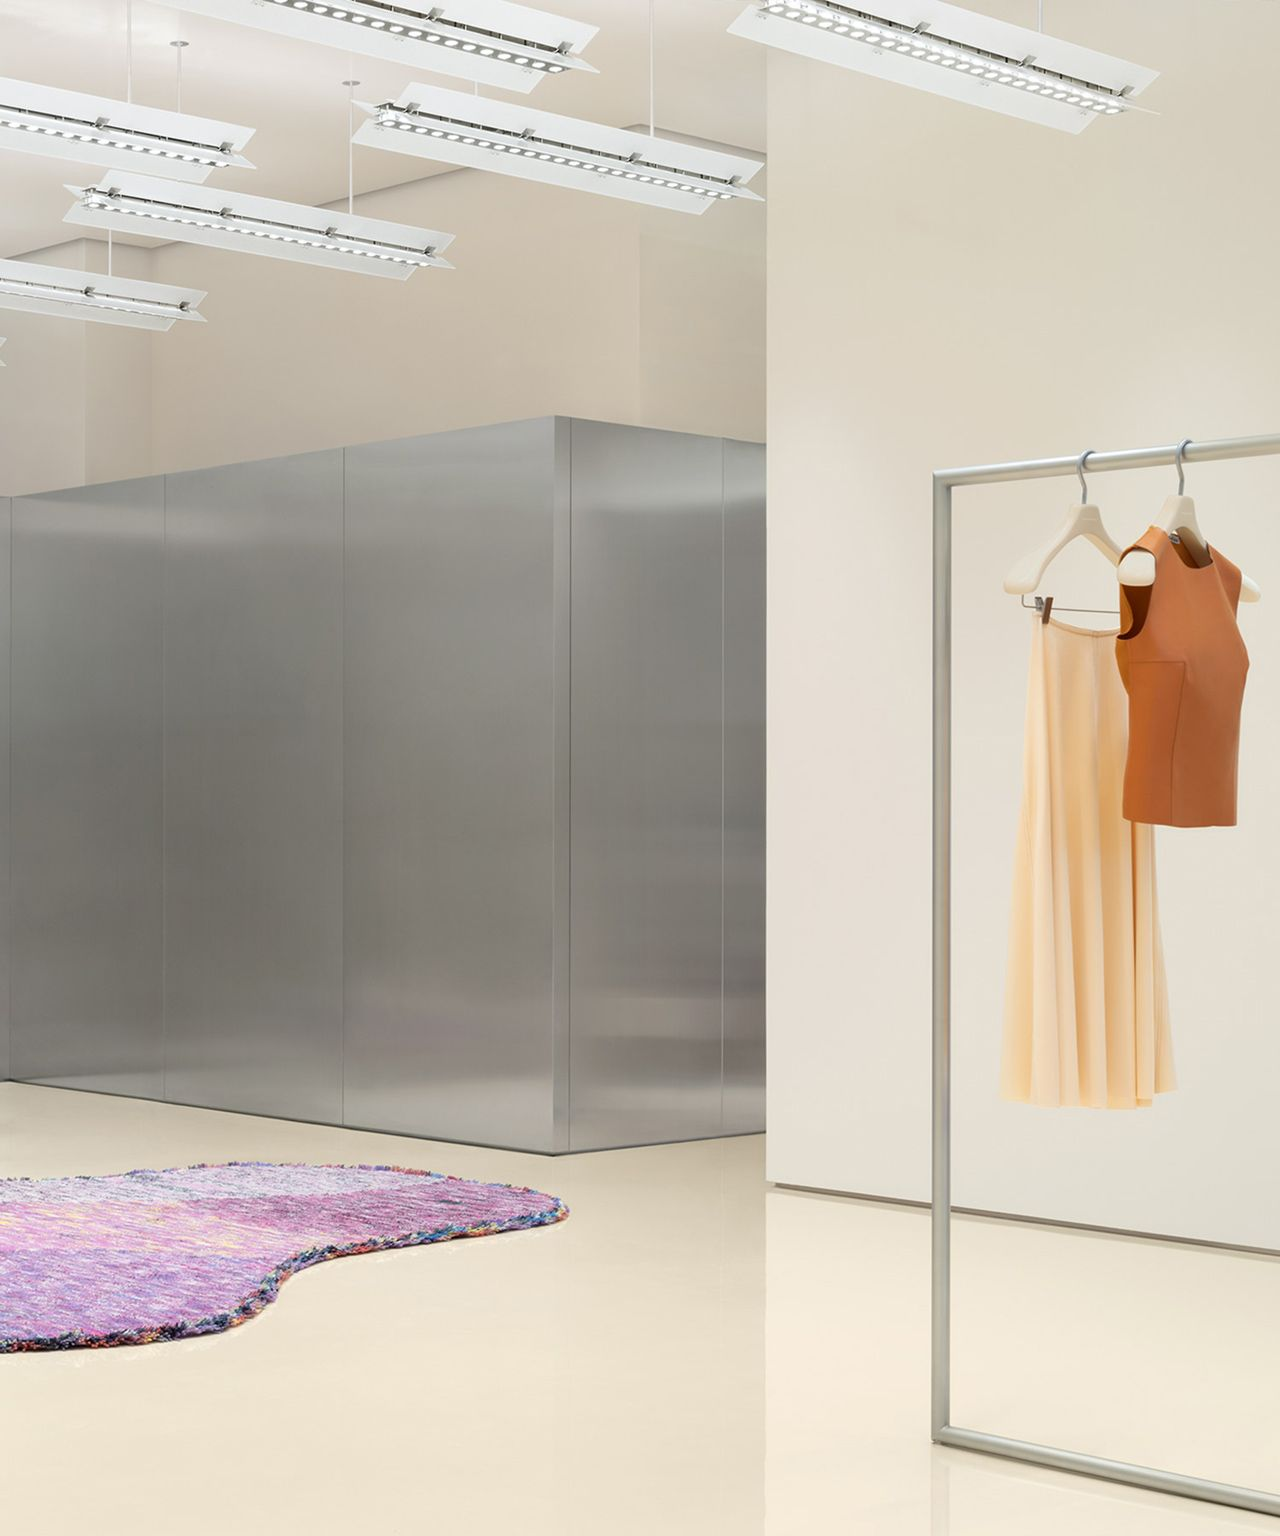 c5cacb2defc Acne Studios – Store Locations – Find an Acne Studios store near you ...